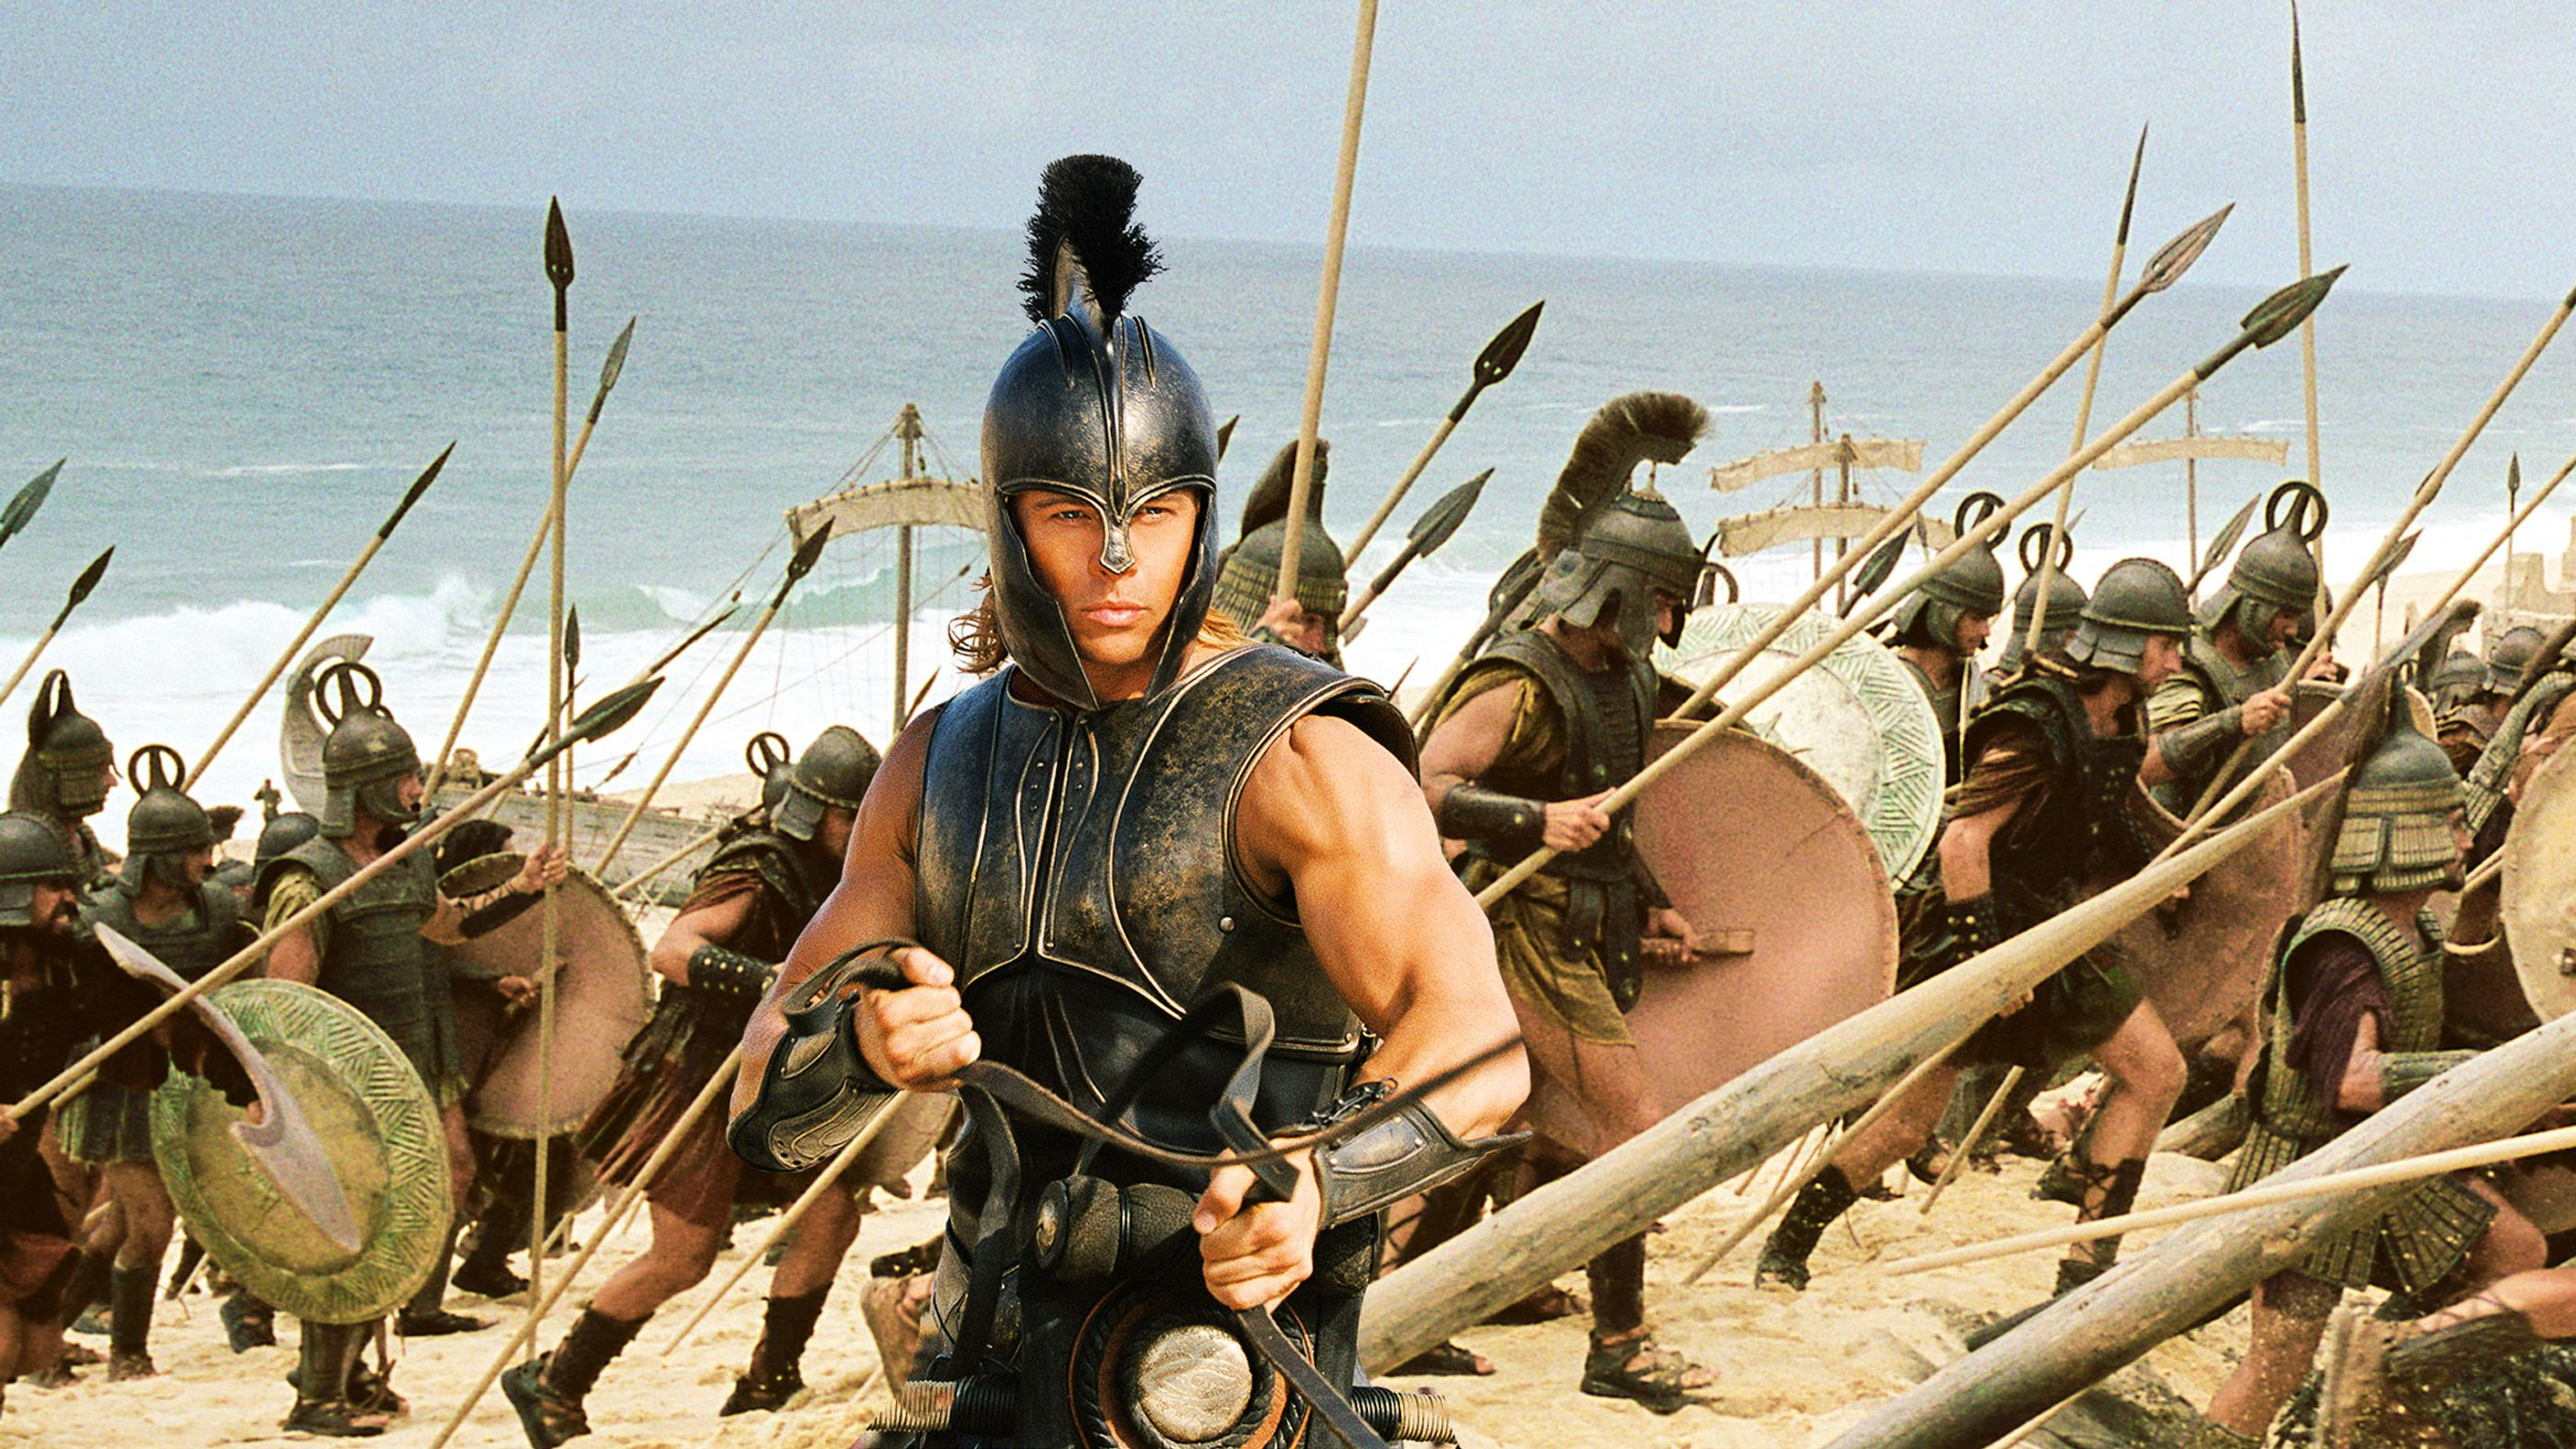 film troy full movie online